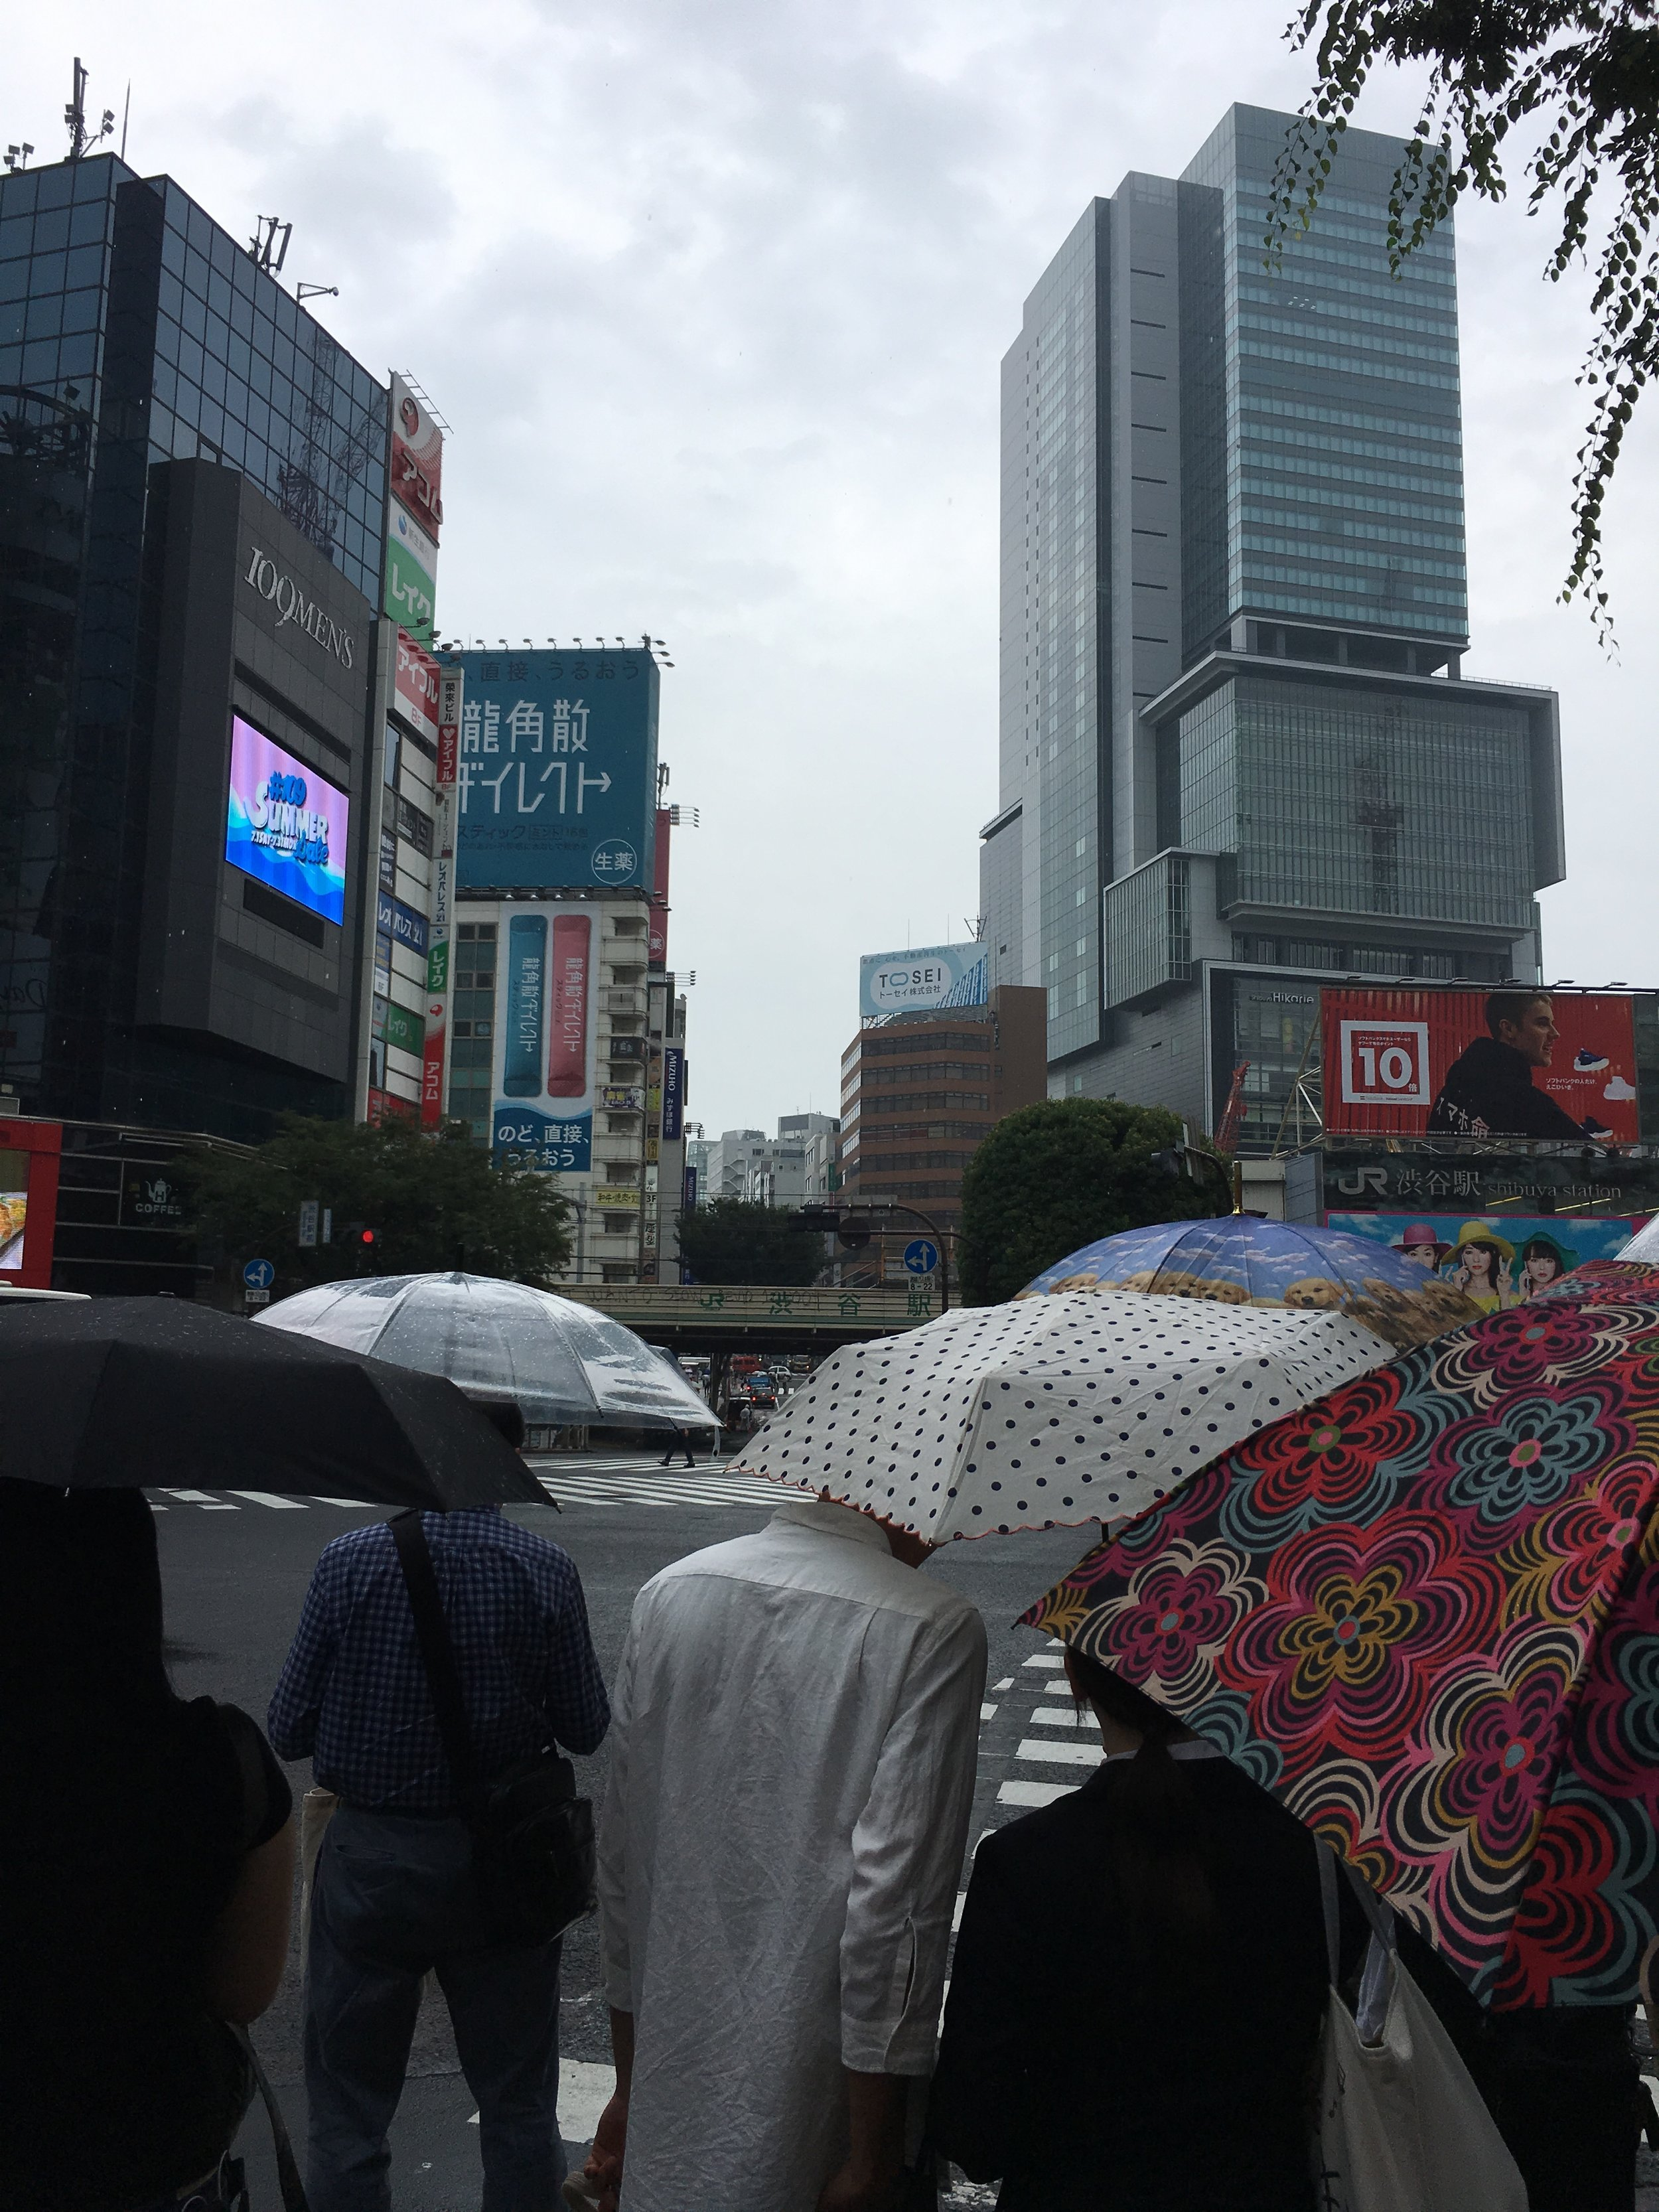 Okay, one more. This is Shibuya today. Photo by yours truly.